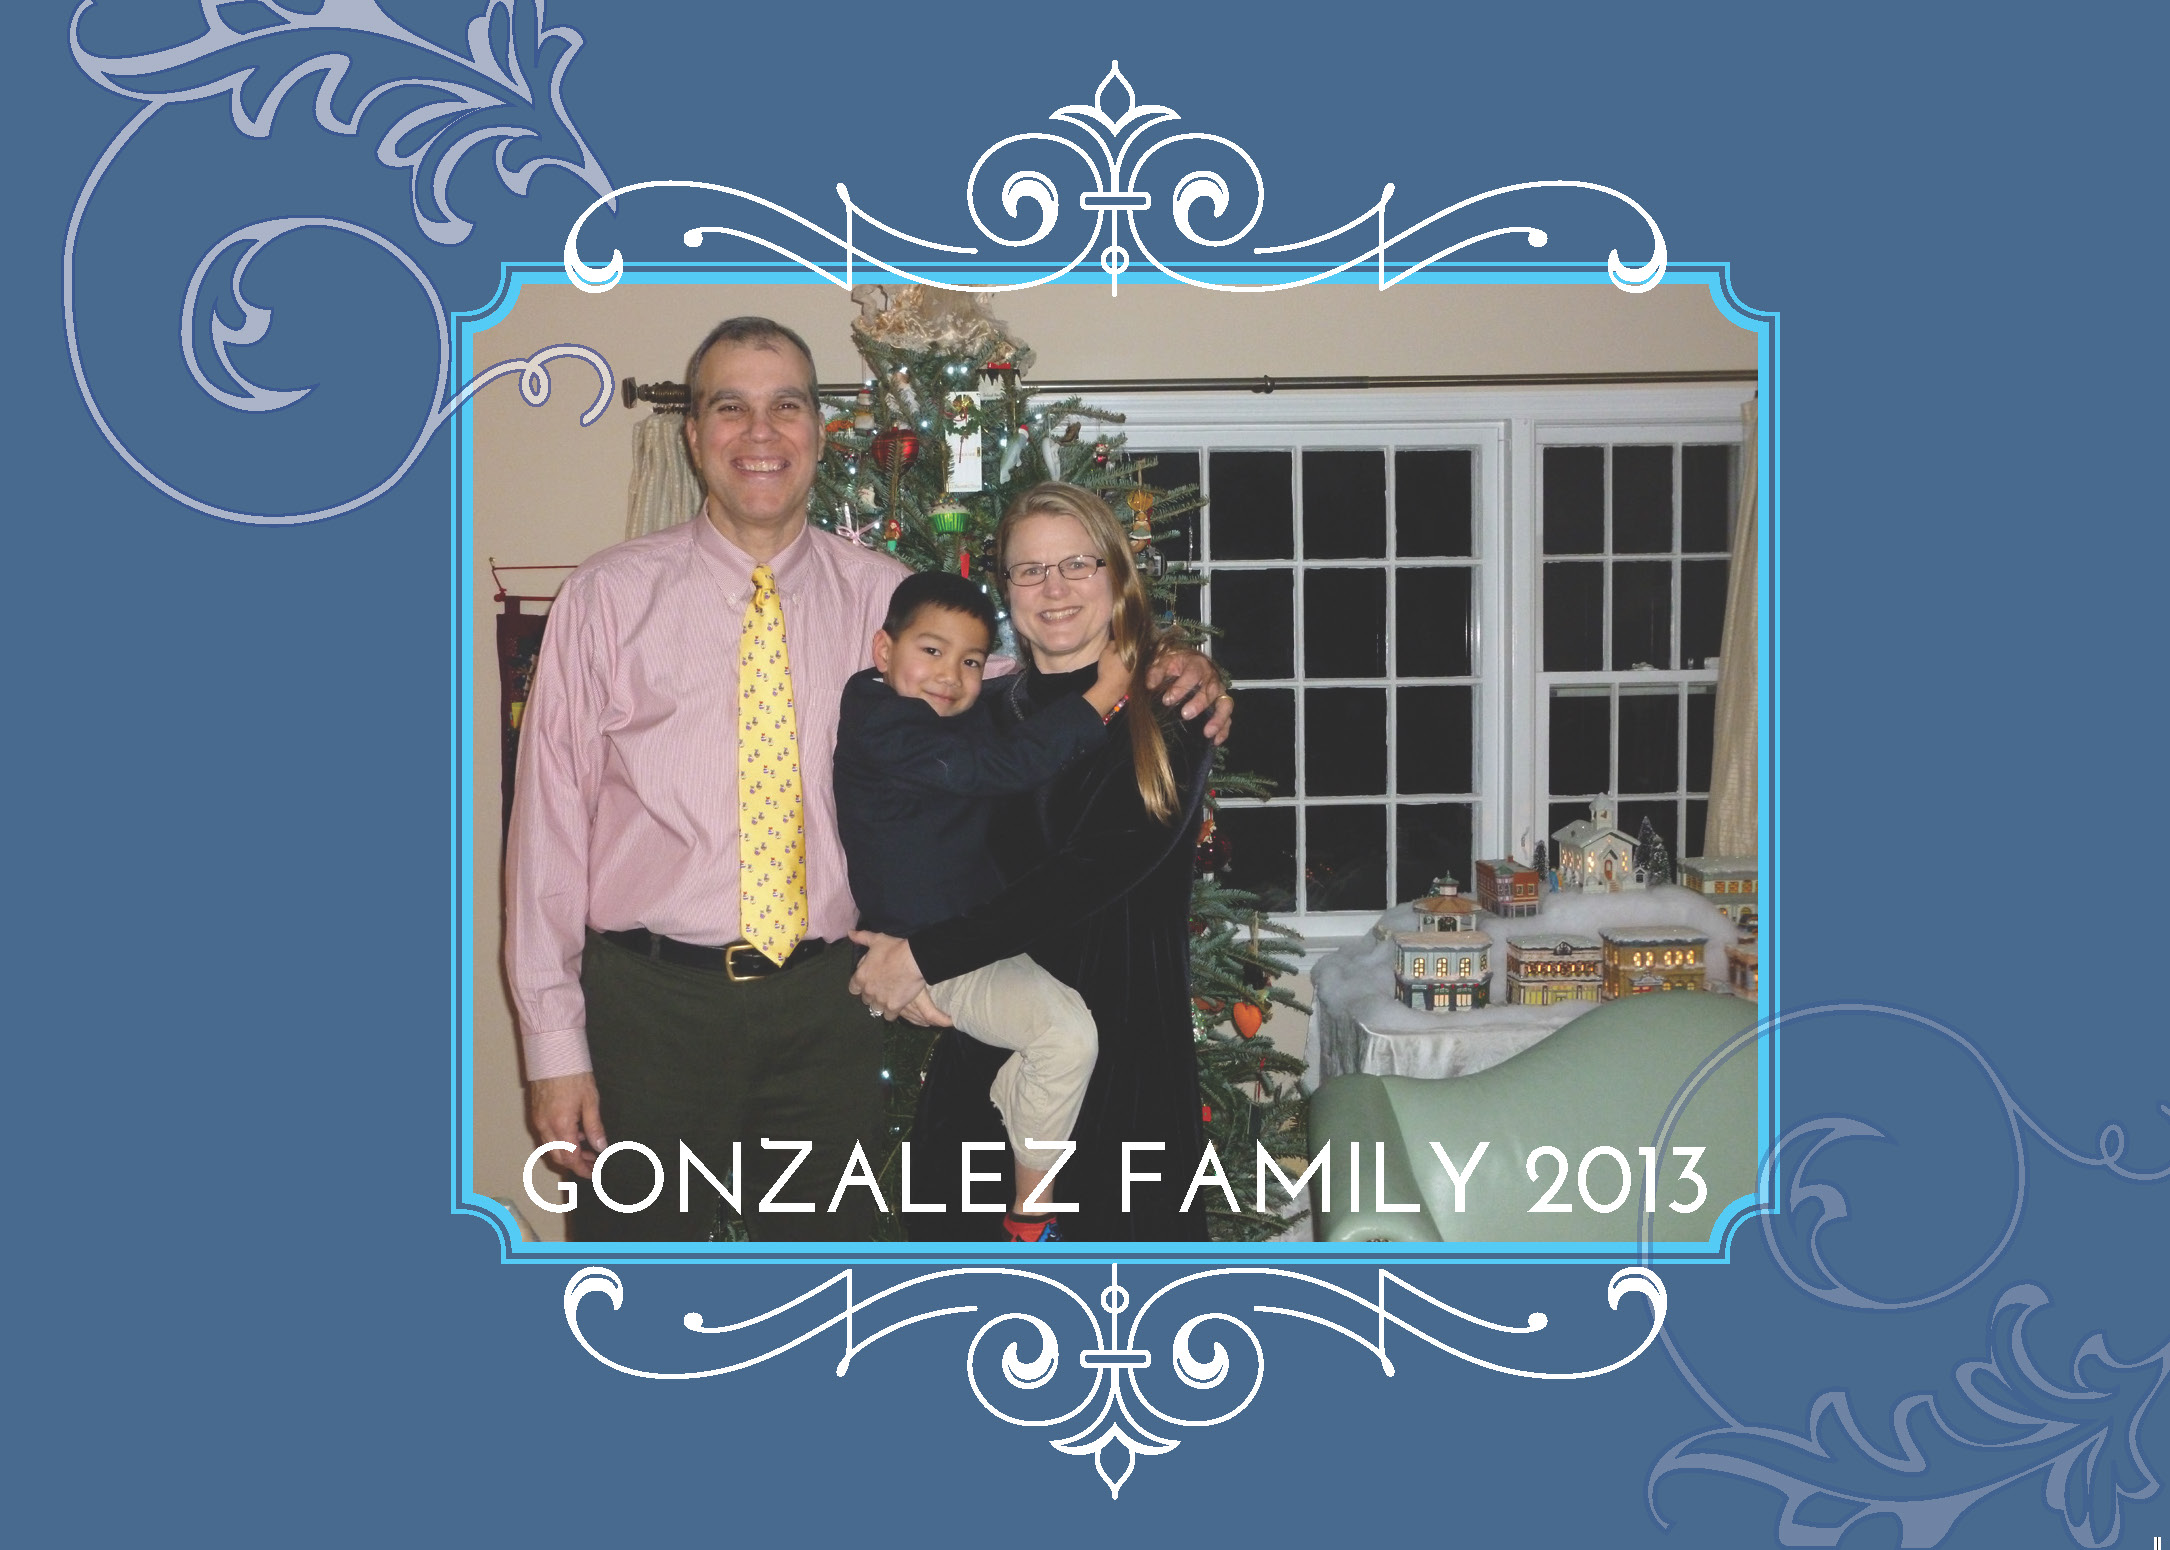 Custom Designed Holiday Albums Available! Makes a Great Gift!